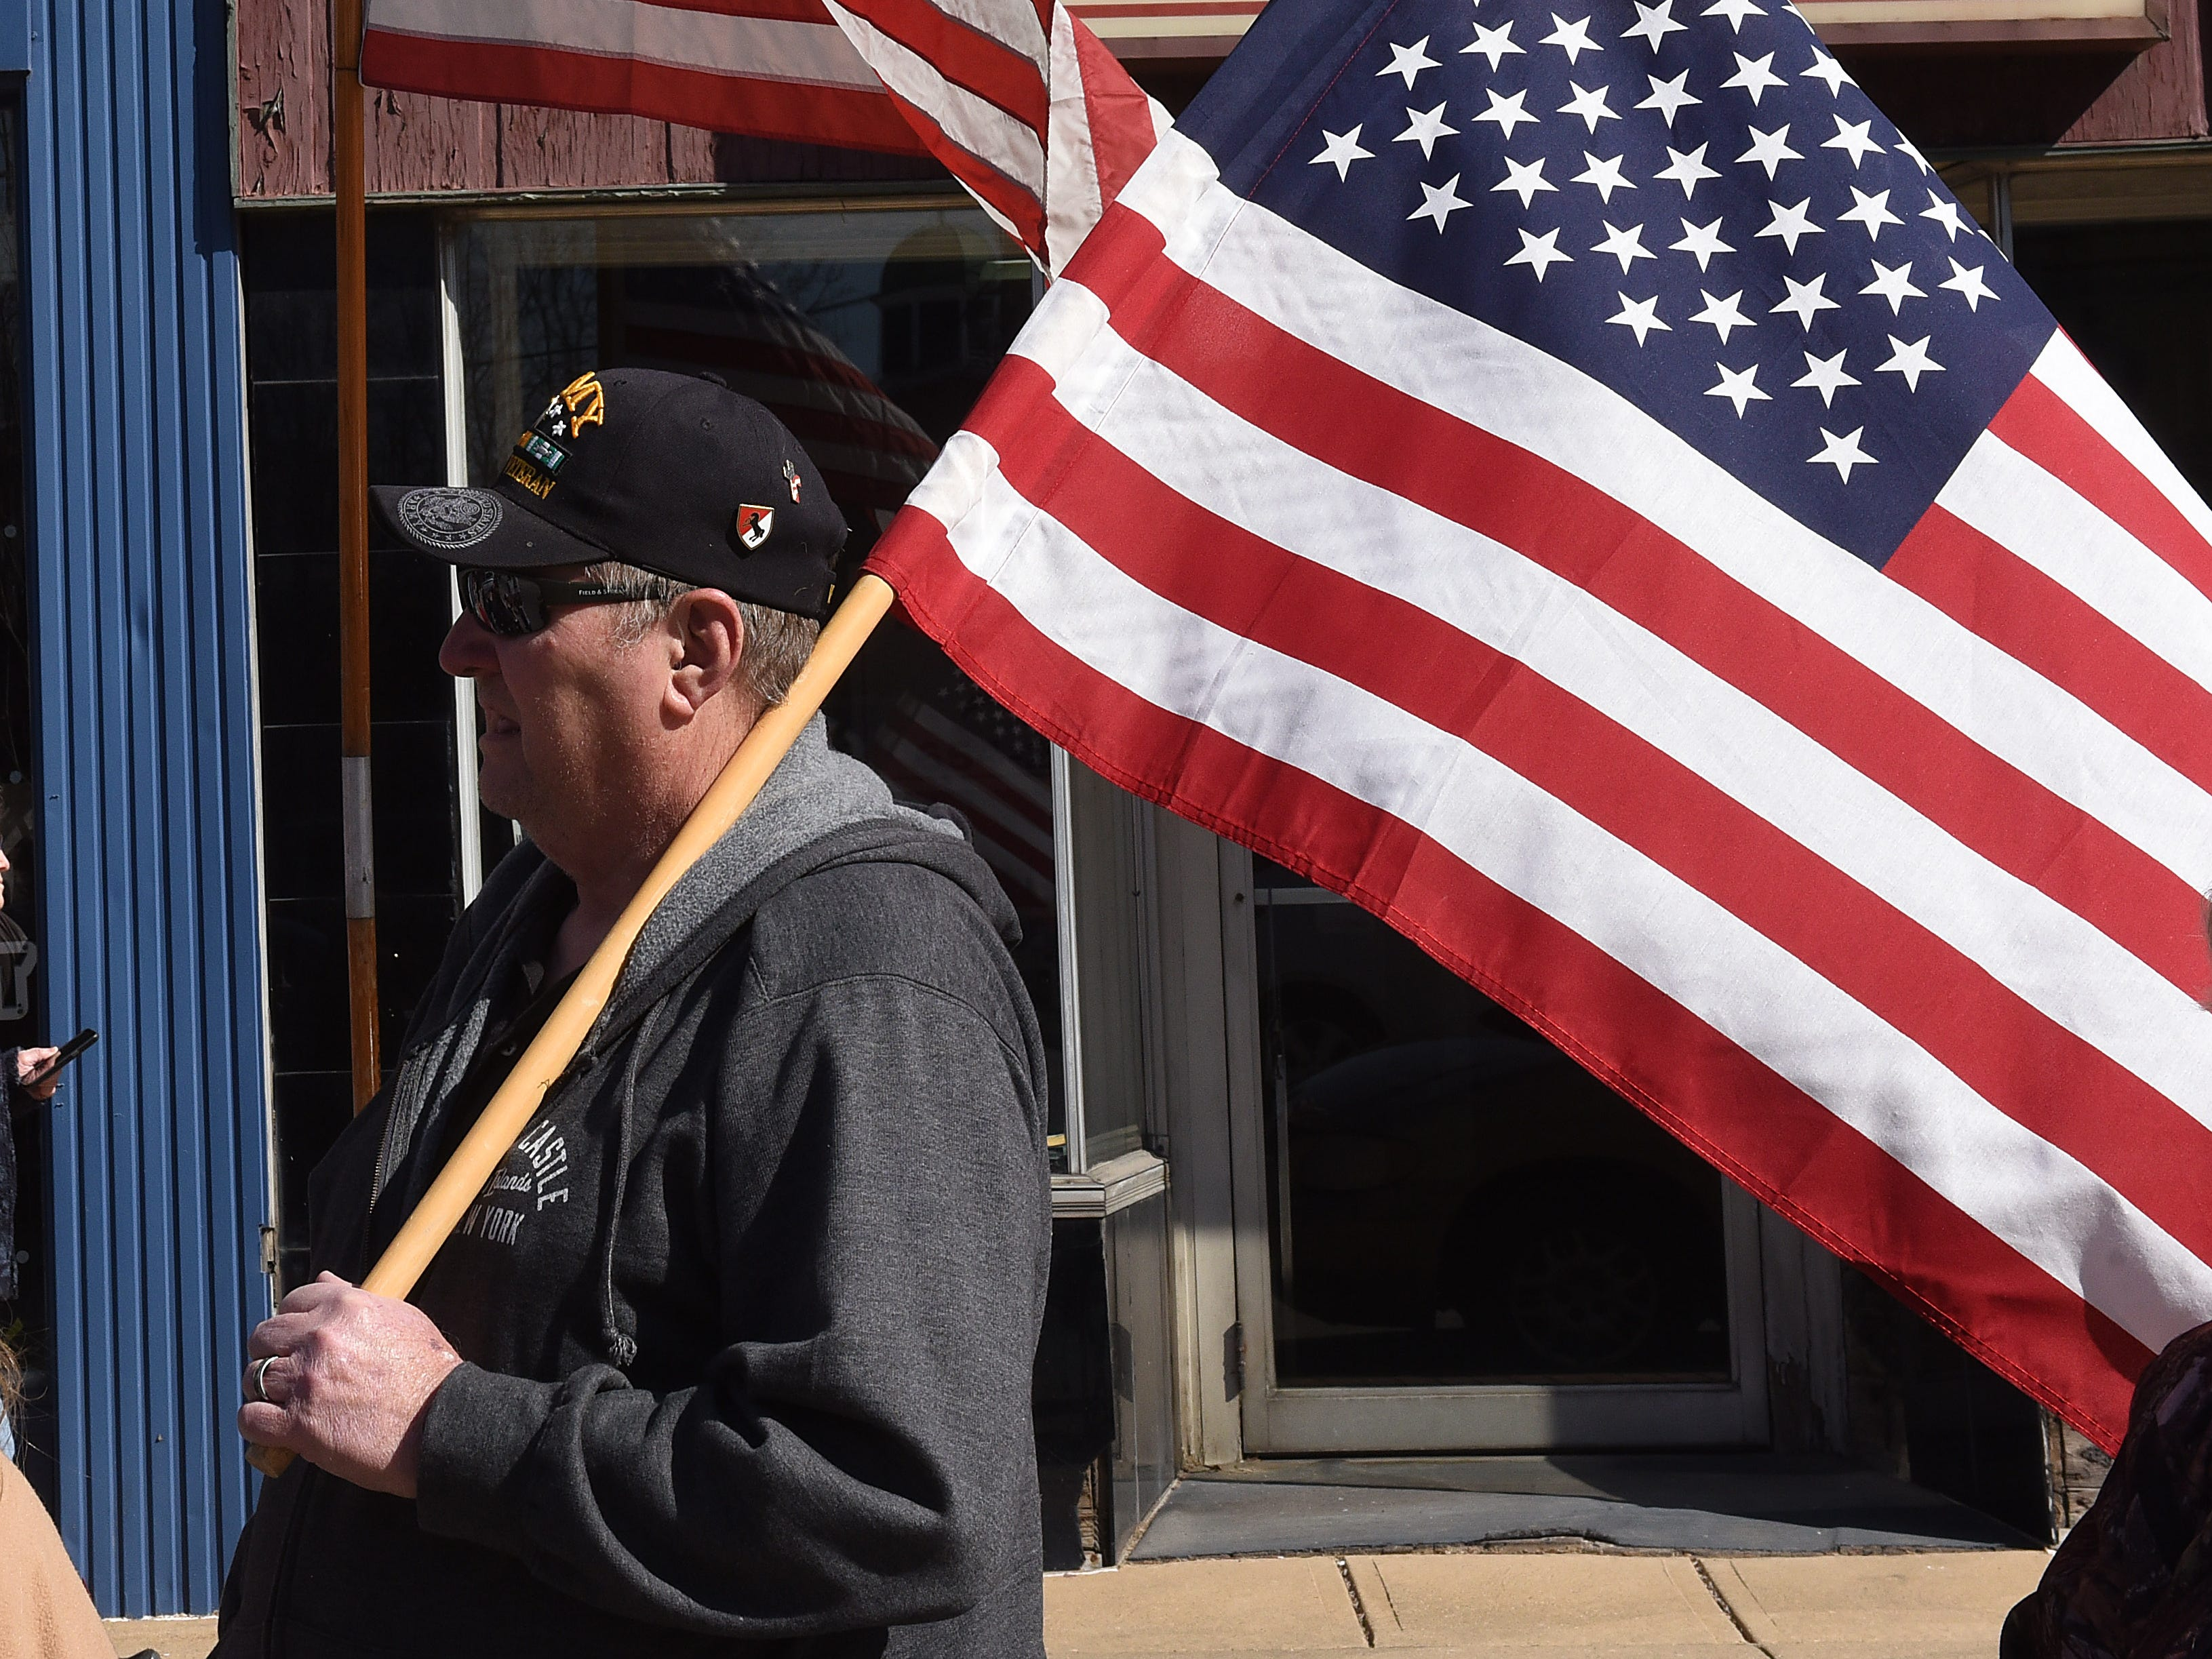 U.S. Army veteran Elon Van Fossen joins the crowd along Main Street for the funeral procession for U.S. Army Sgt. Joseph Collette in downtown Lancaster on Wednesday, April 3, 2019. Van Fossen said he felt proud to do this for the young man and his family.